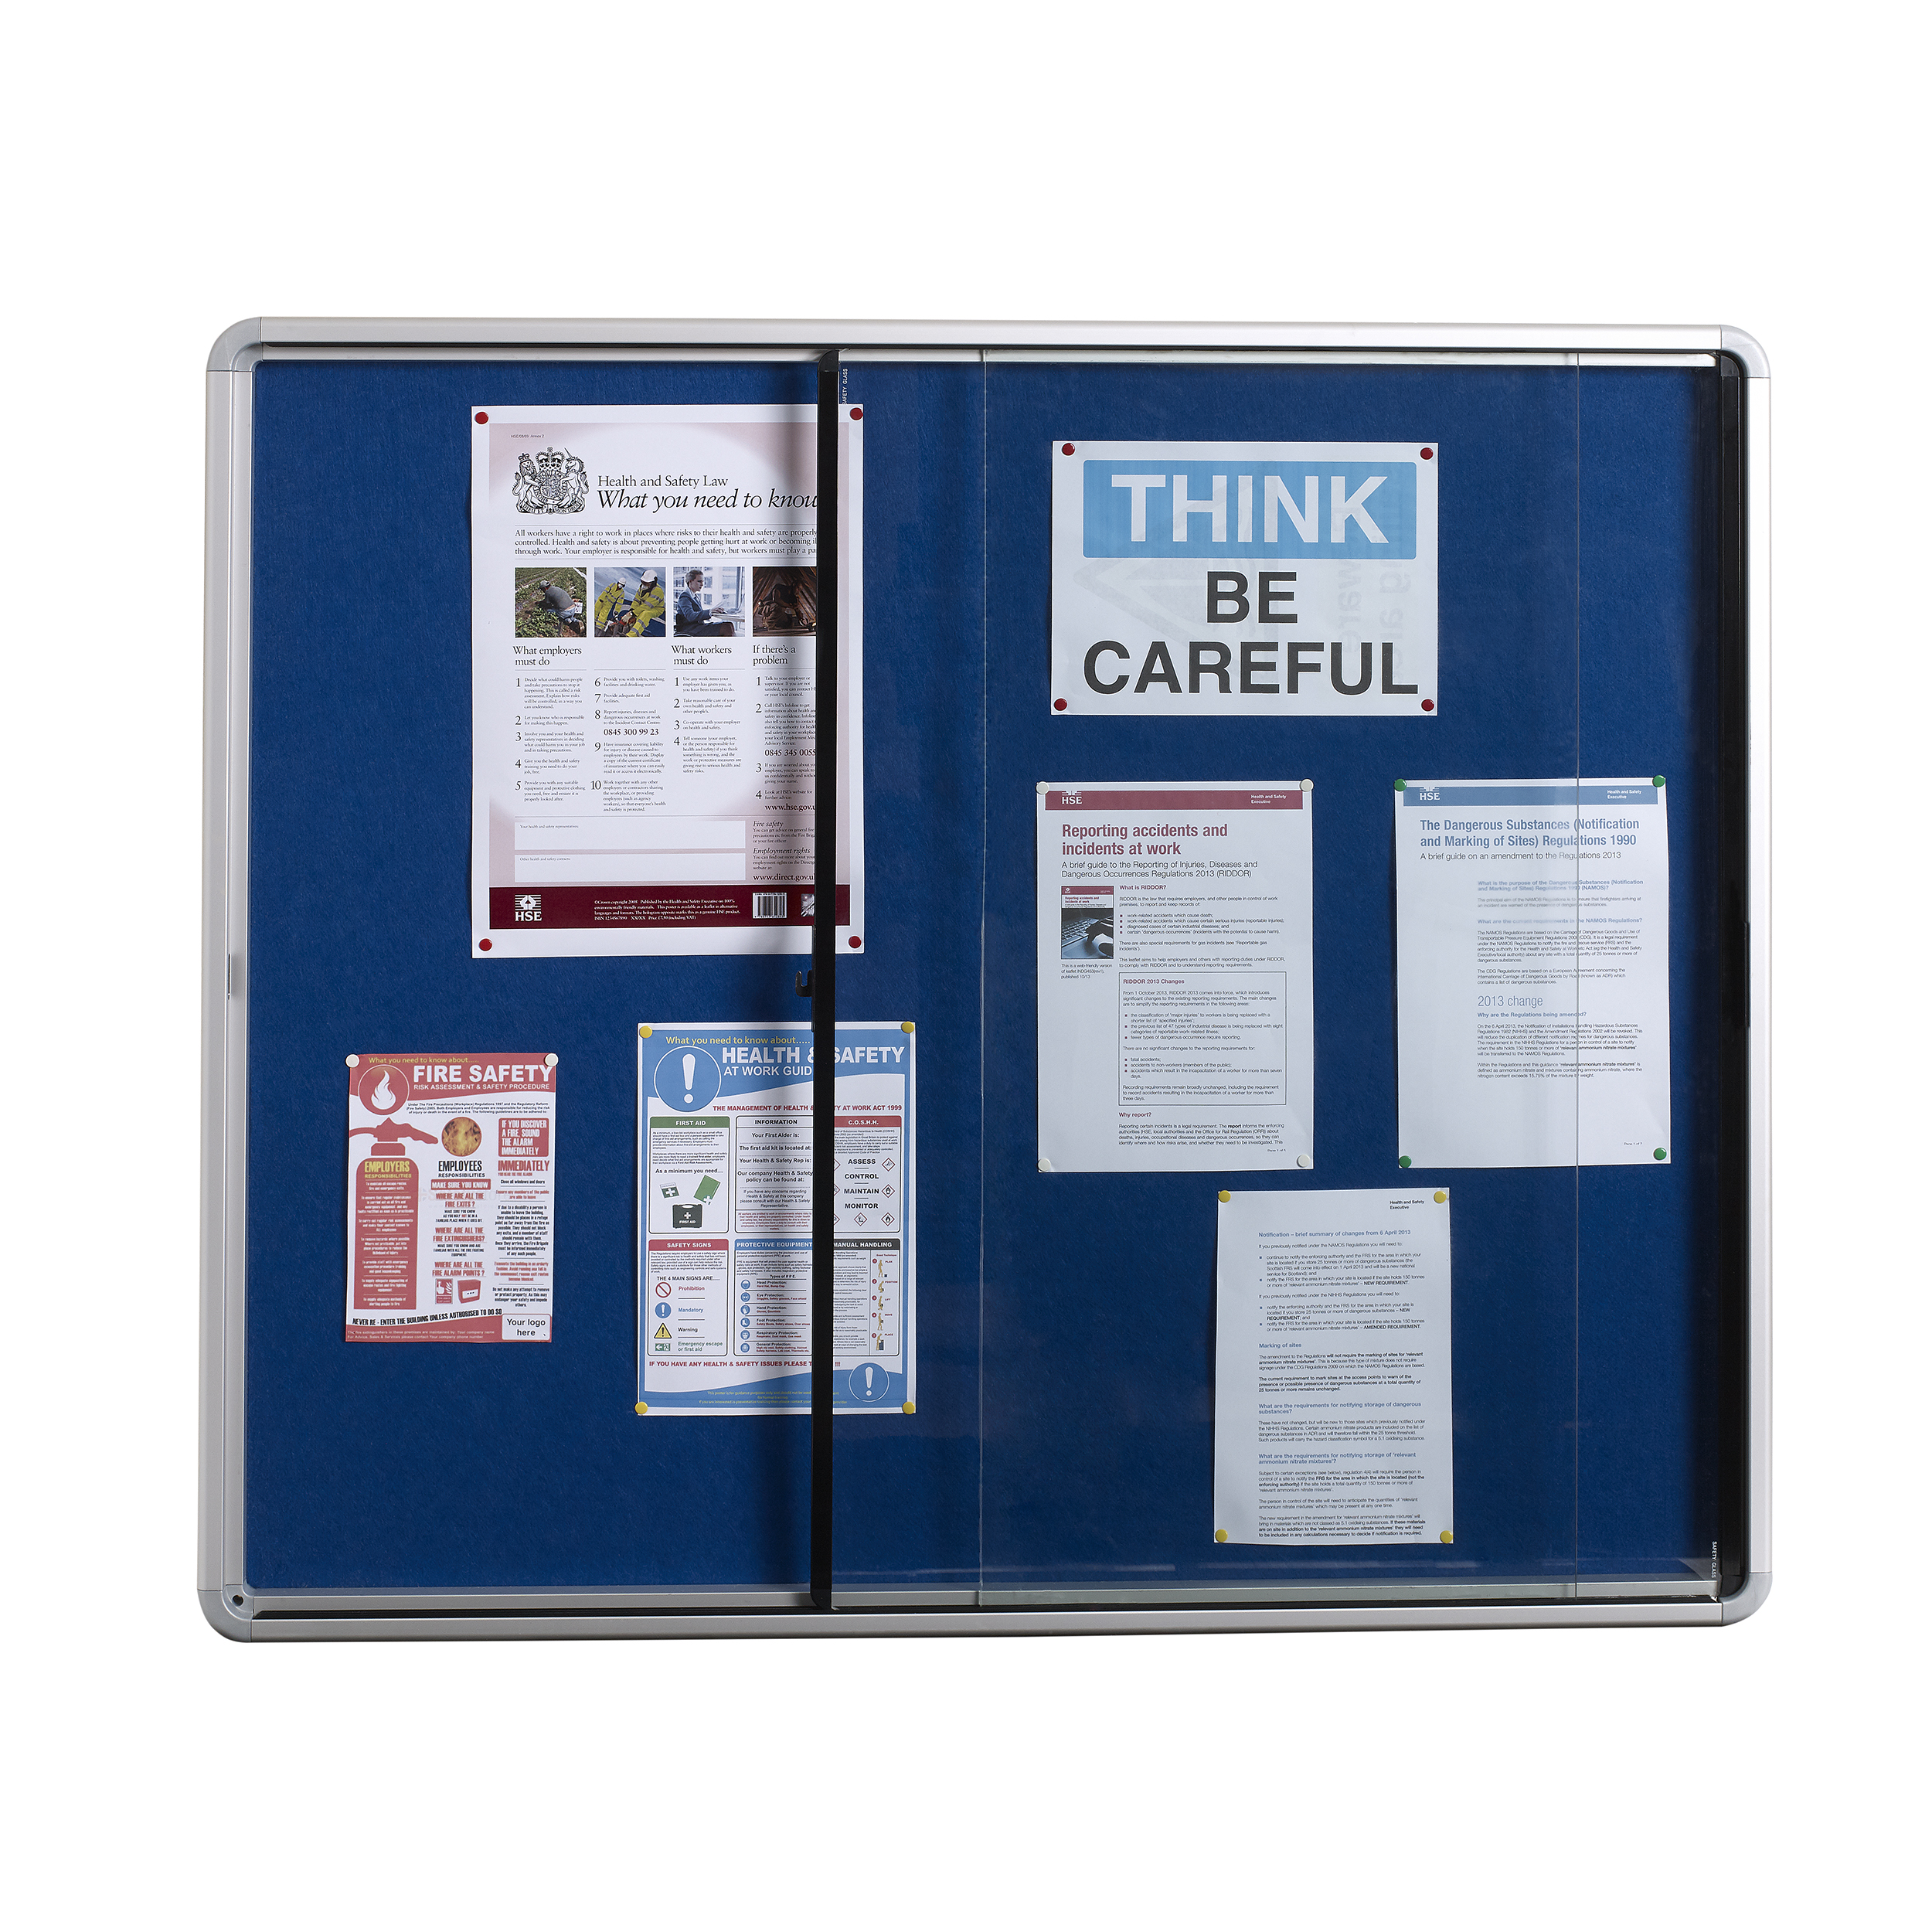 5 Star Glazed Noticeboard with sliding Door Locking Alumin Frame Blue Felt 900x1200mm